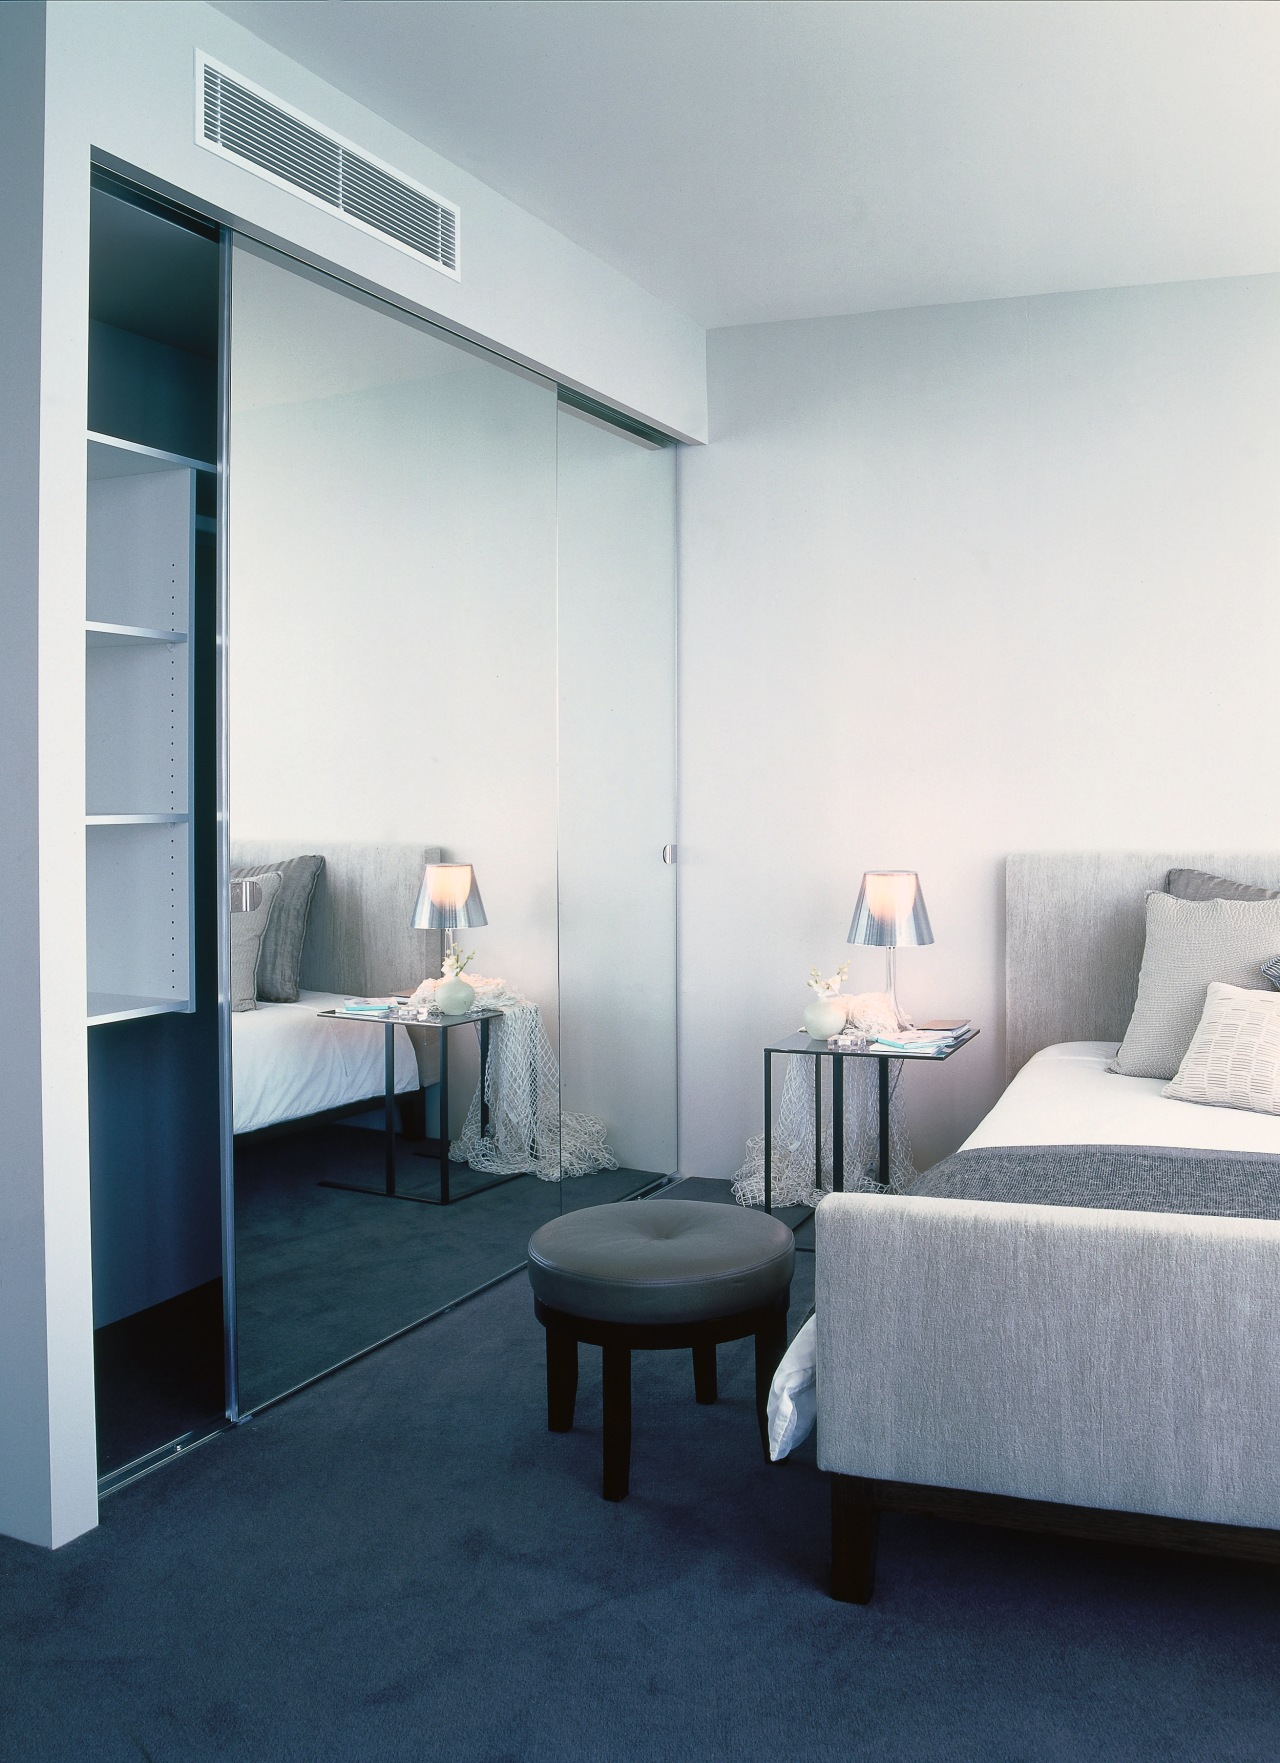 Bedroom with cream walls and bedding and mirror ceiling, furniture, interior design, room, gray, white